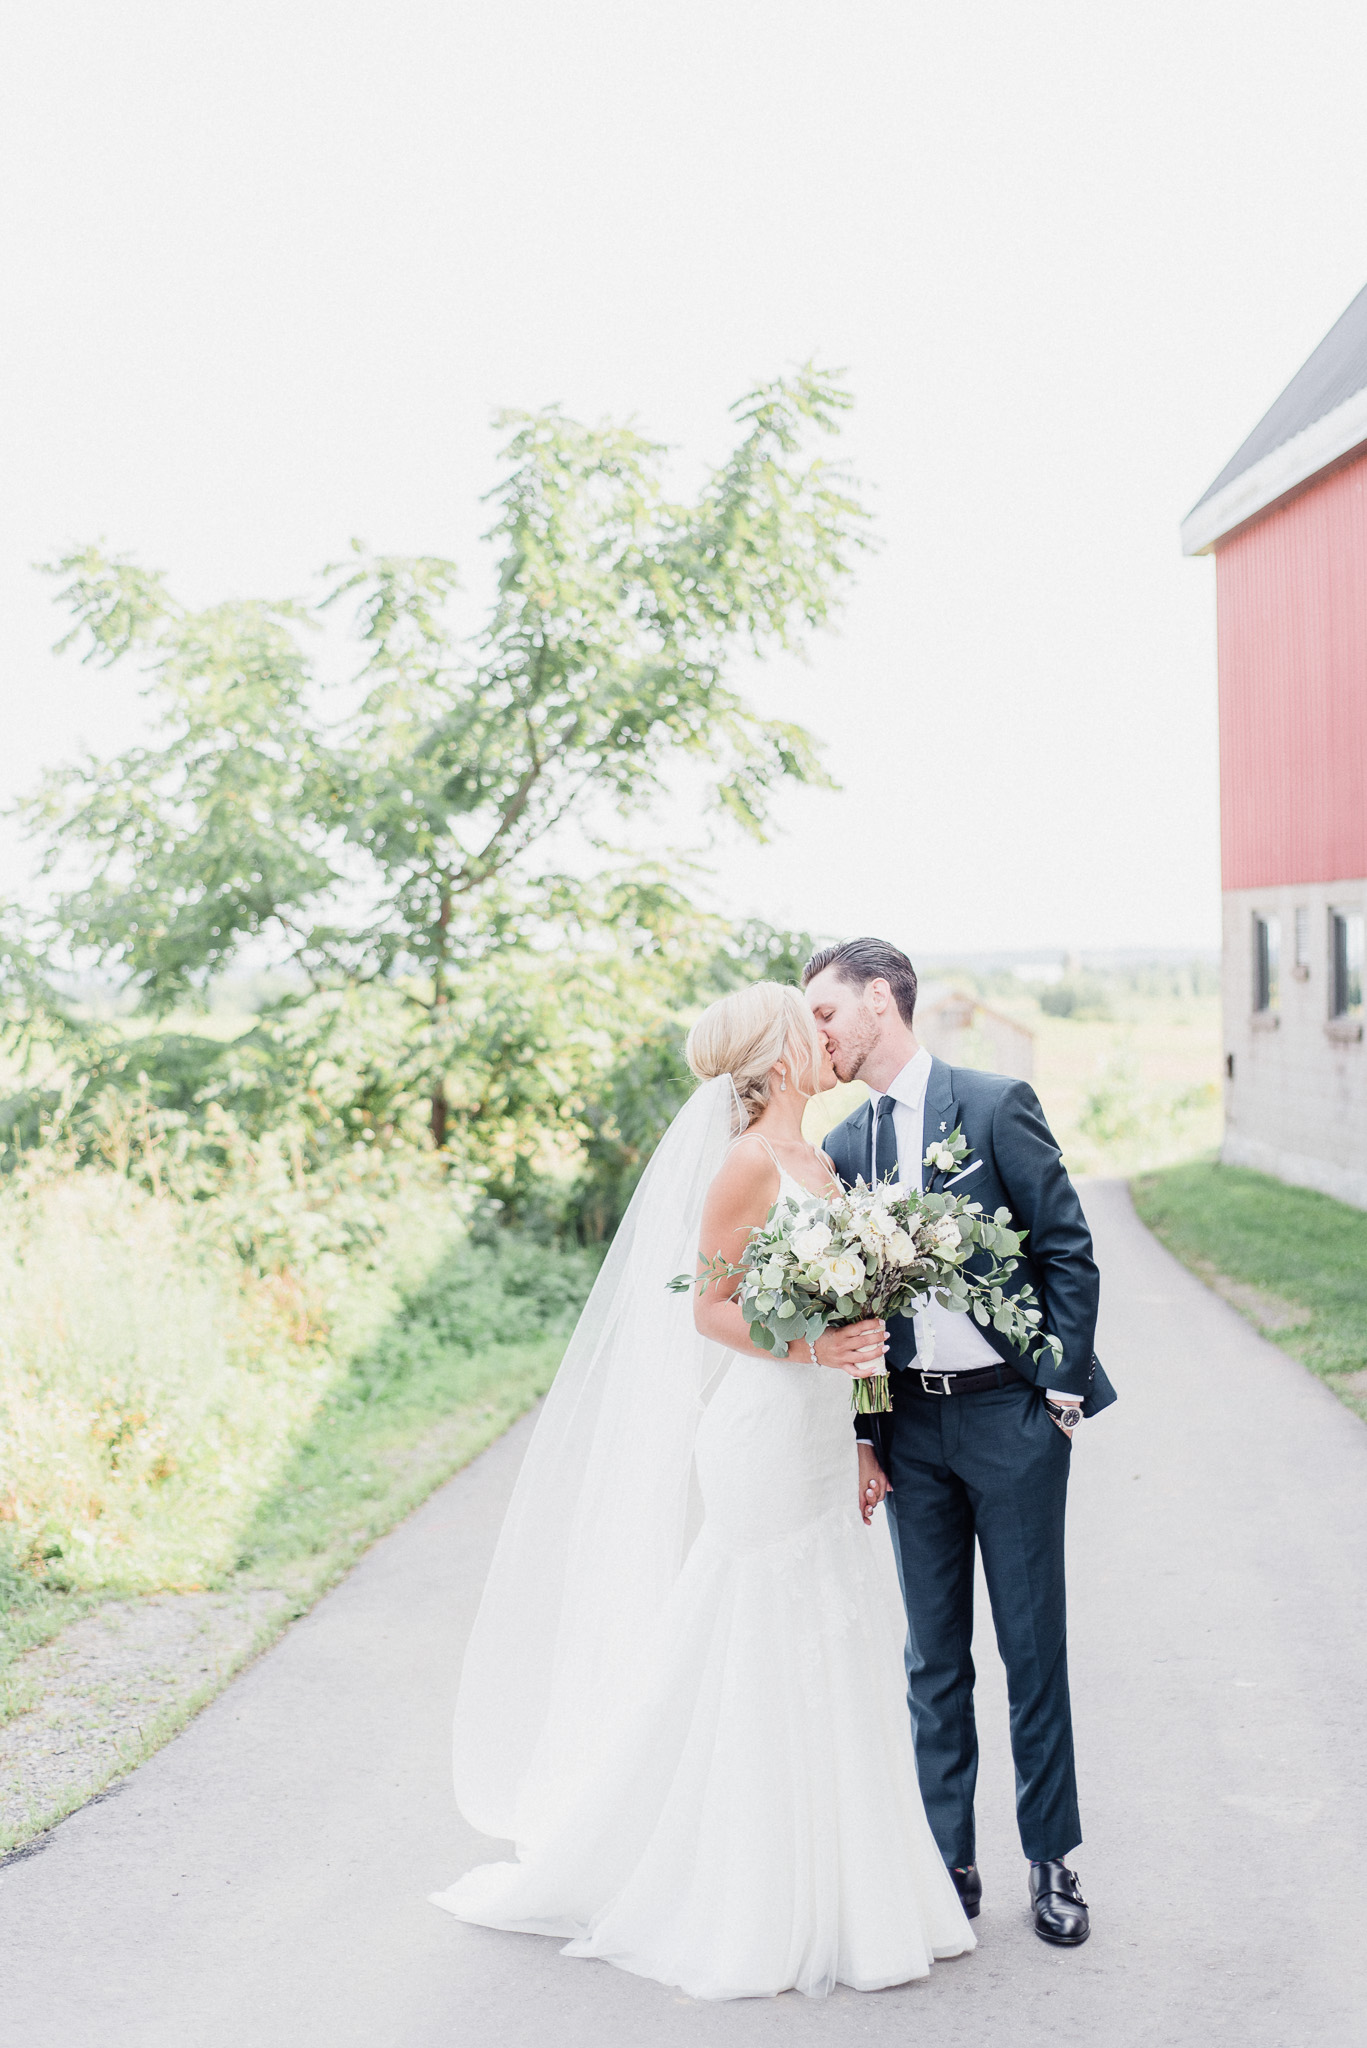 Summertime Wedding at Earth to Table Farm by Jenn Kavanagh Photography